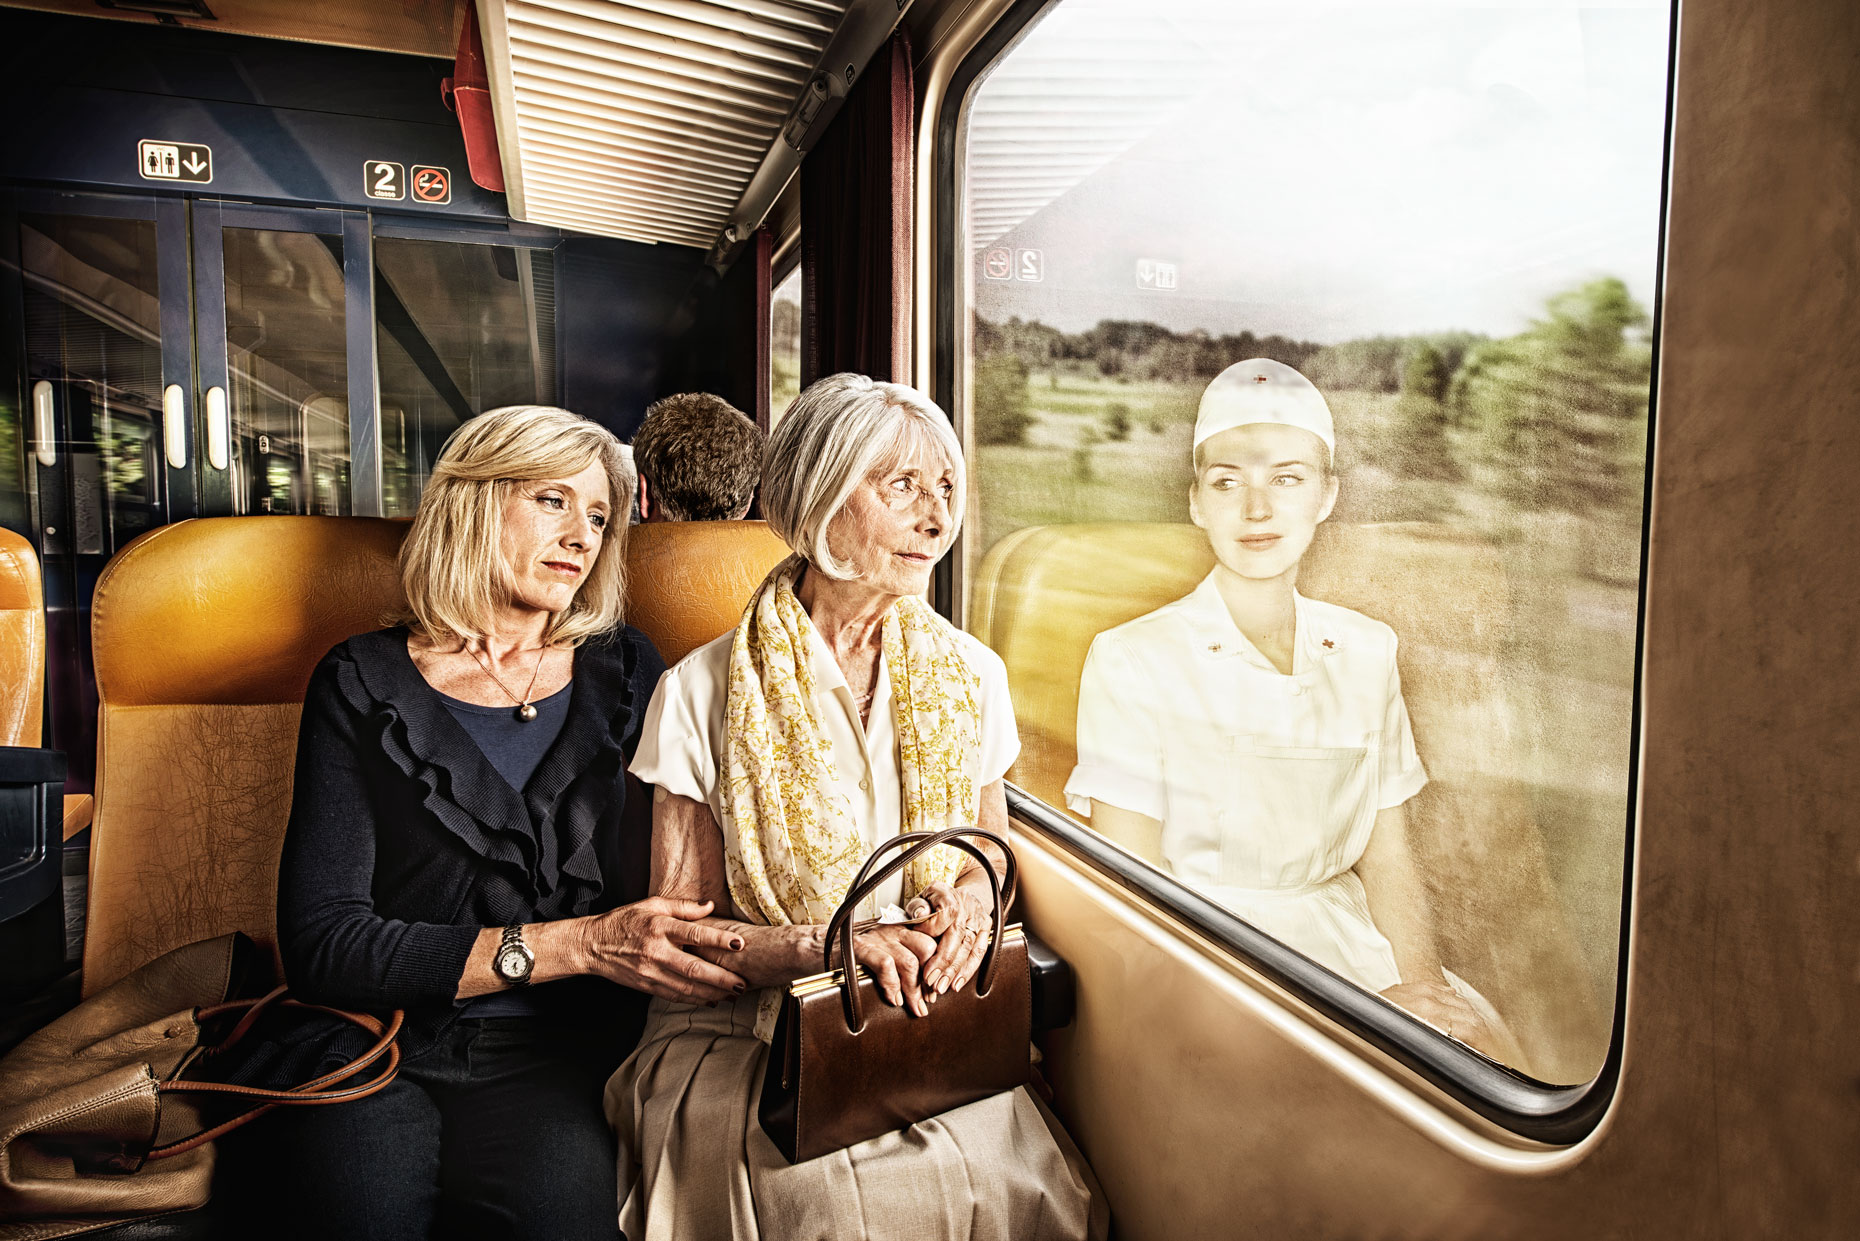 Does the mirror reflect how you feel? This photo series captures older people as they once were